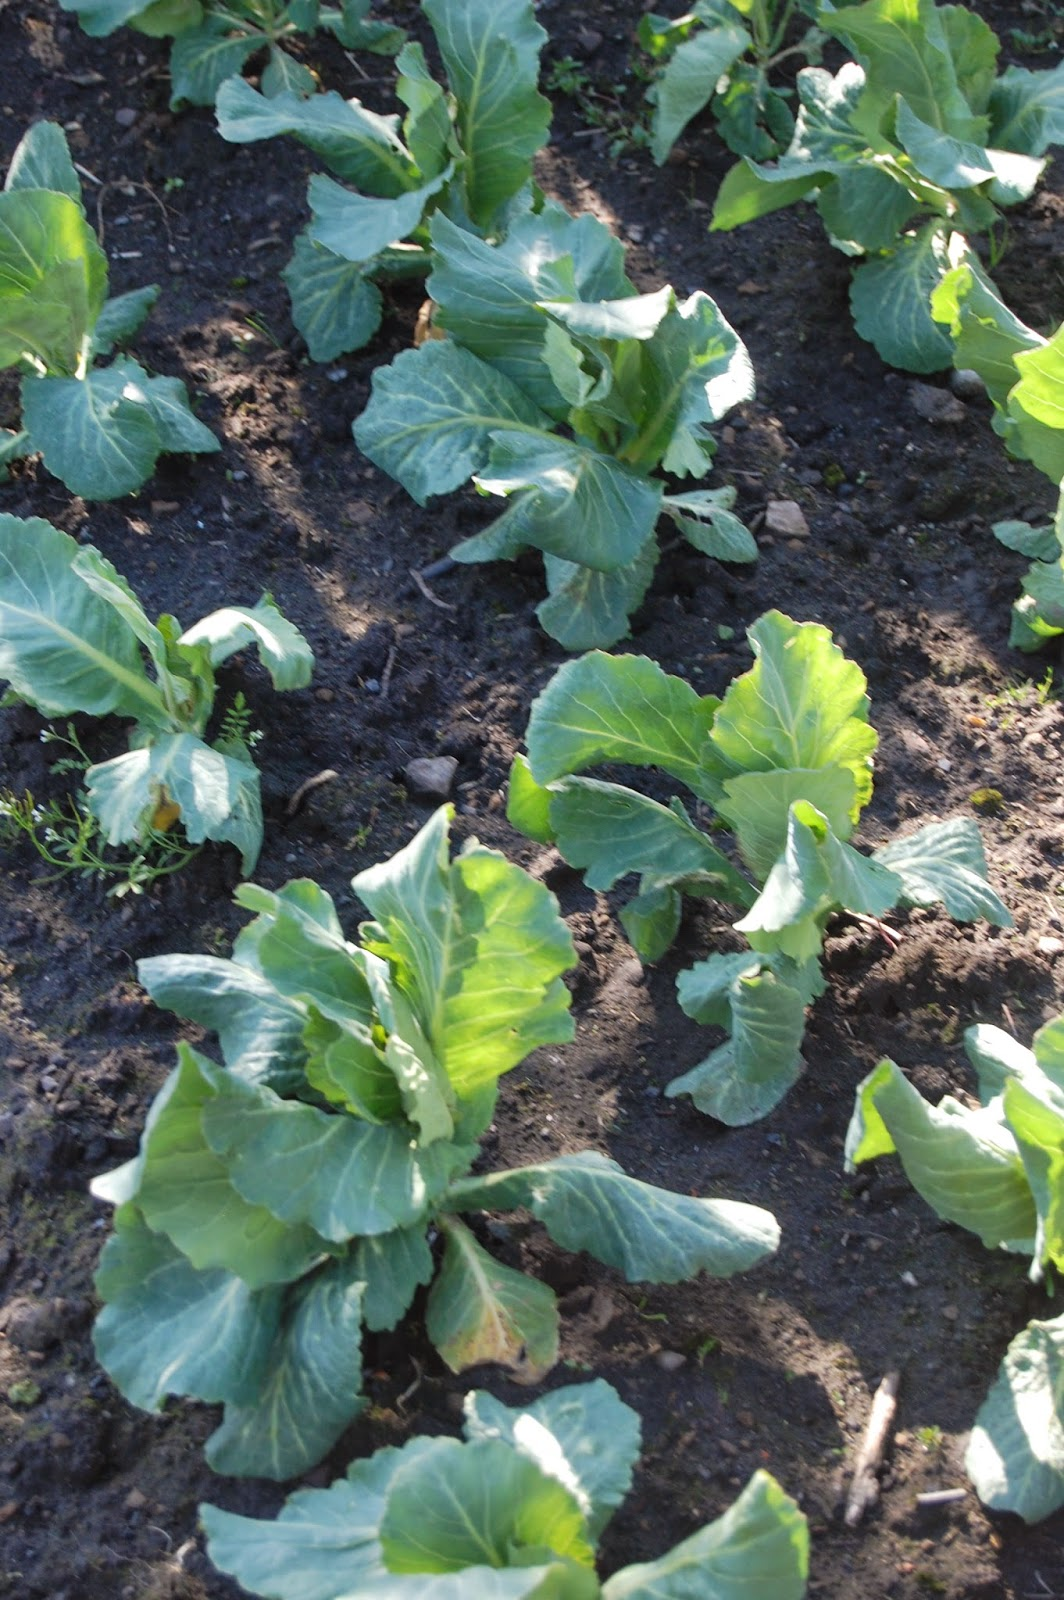 Cabbages became a staple food at Pig Row.